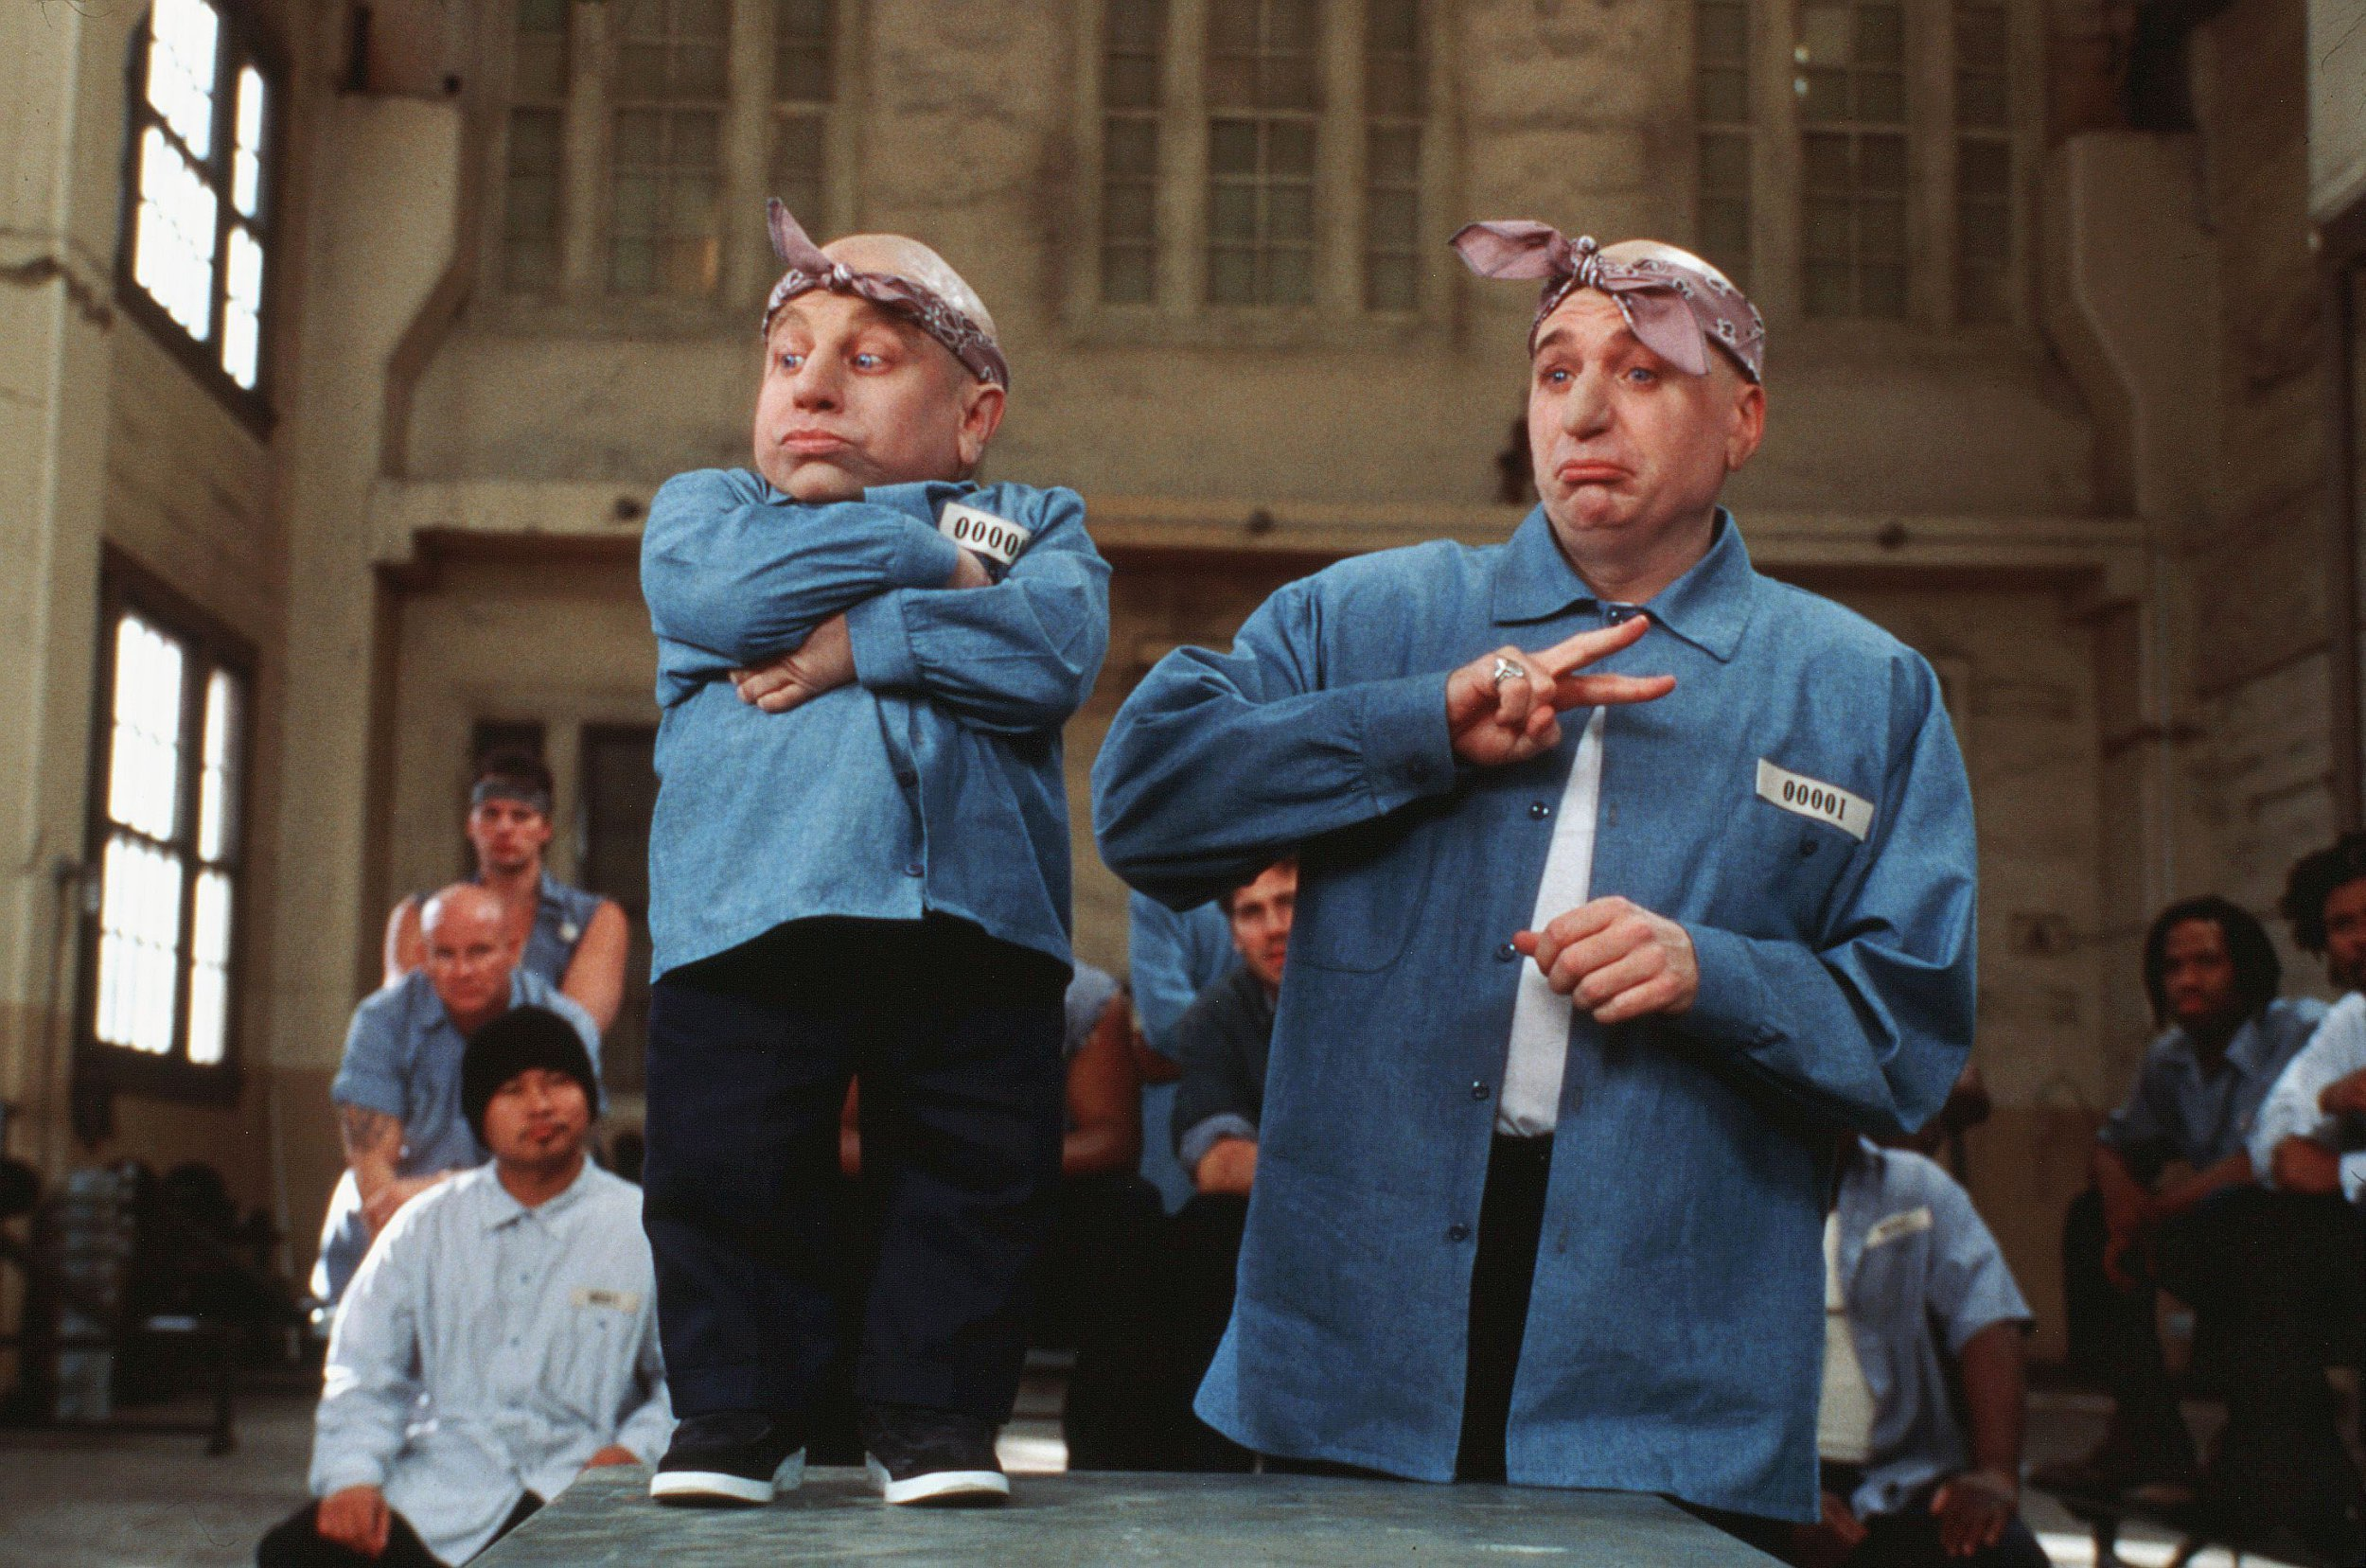 'I hope he's in a better place': Mike Myers pays tribute as Austin Powers star Verne Troyer dies aged 49